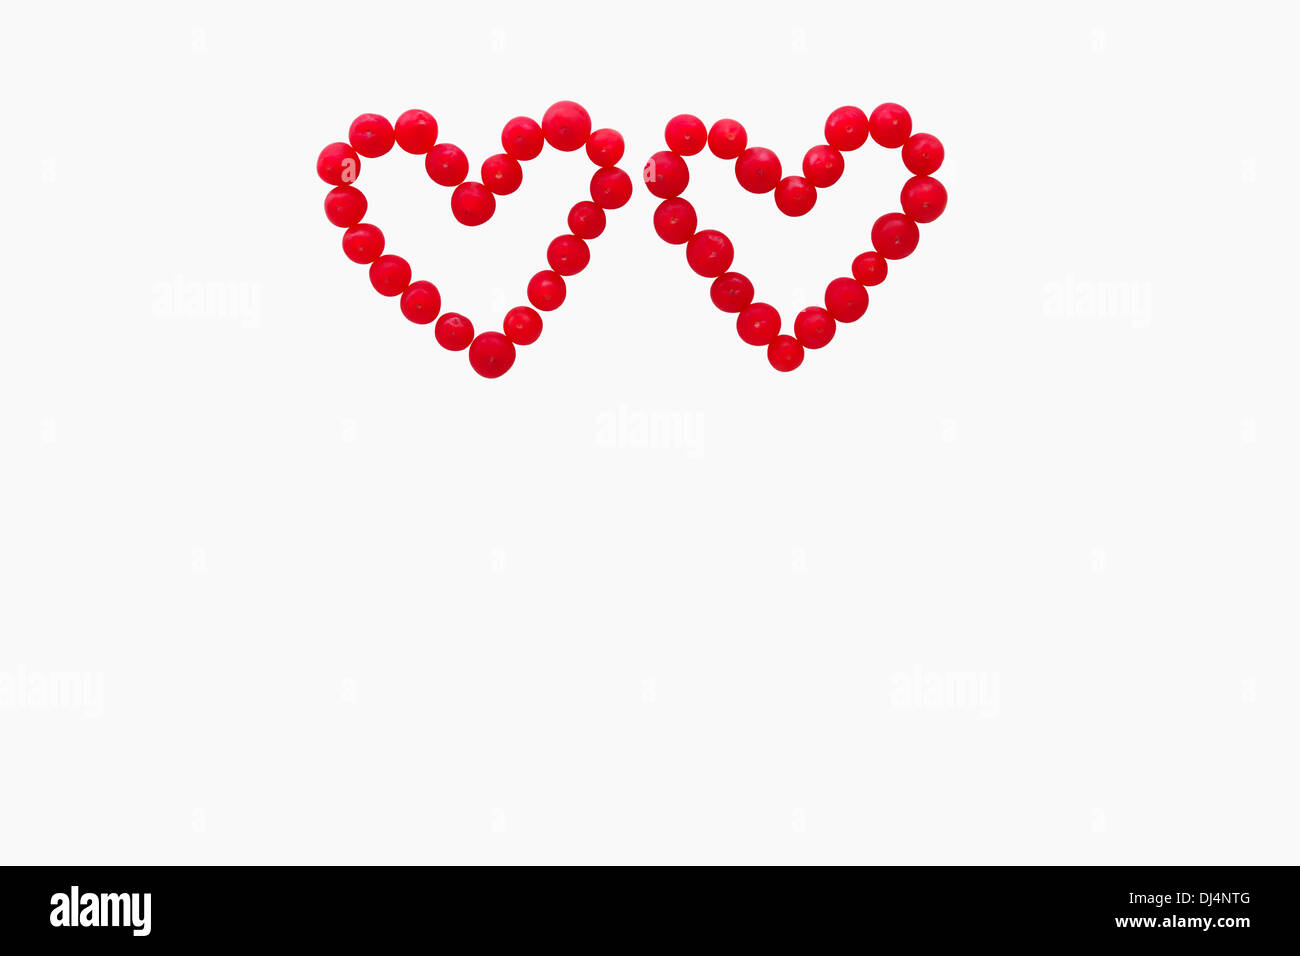 Valentine card concept. Red yew fruits forming two hearts, isolated on white background with copy space - Stock Image